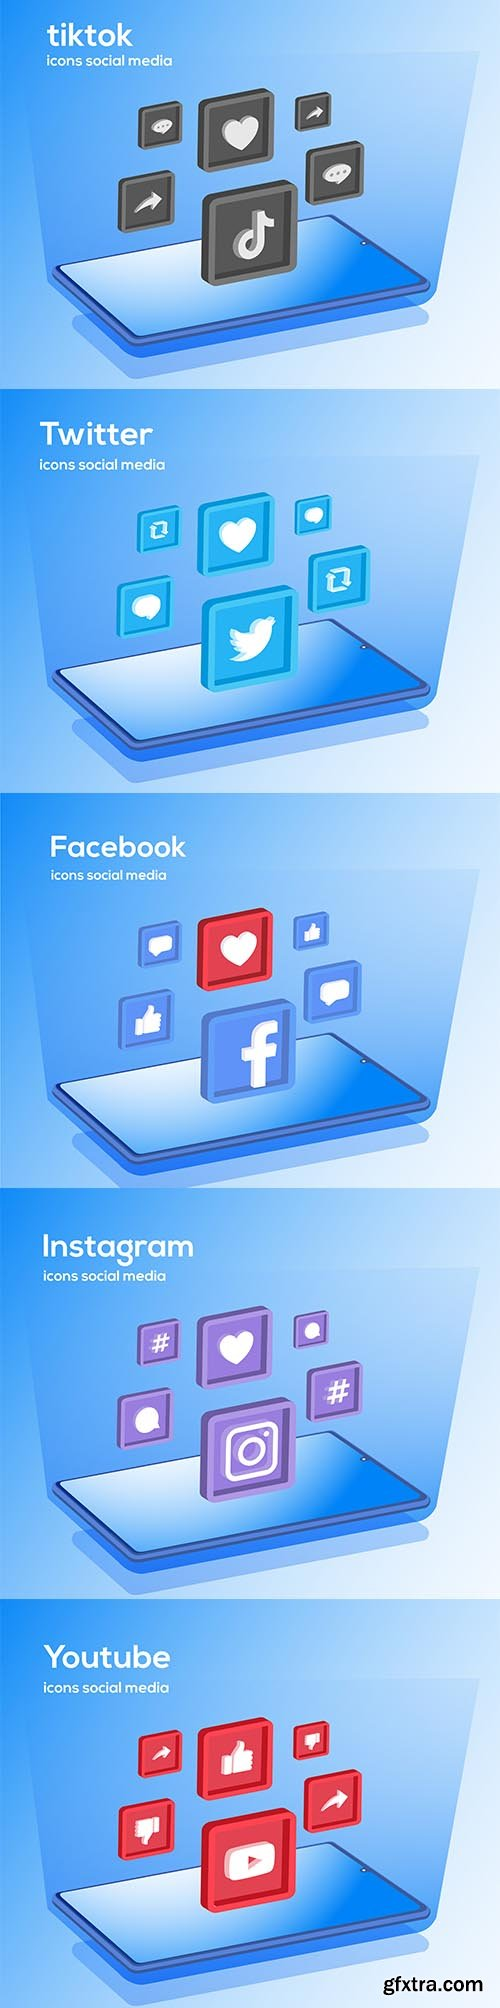 Social media icons with smartphone symbol